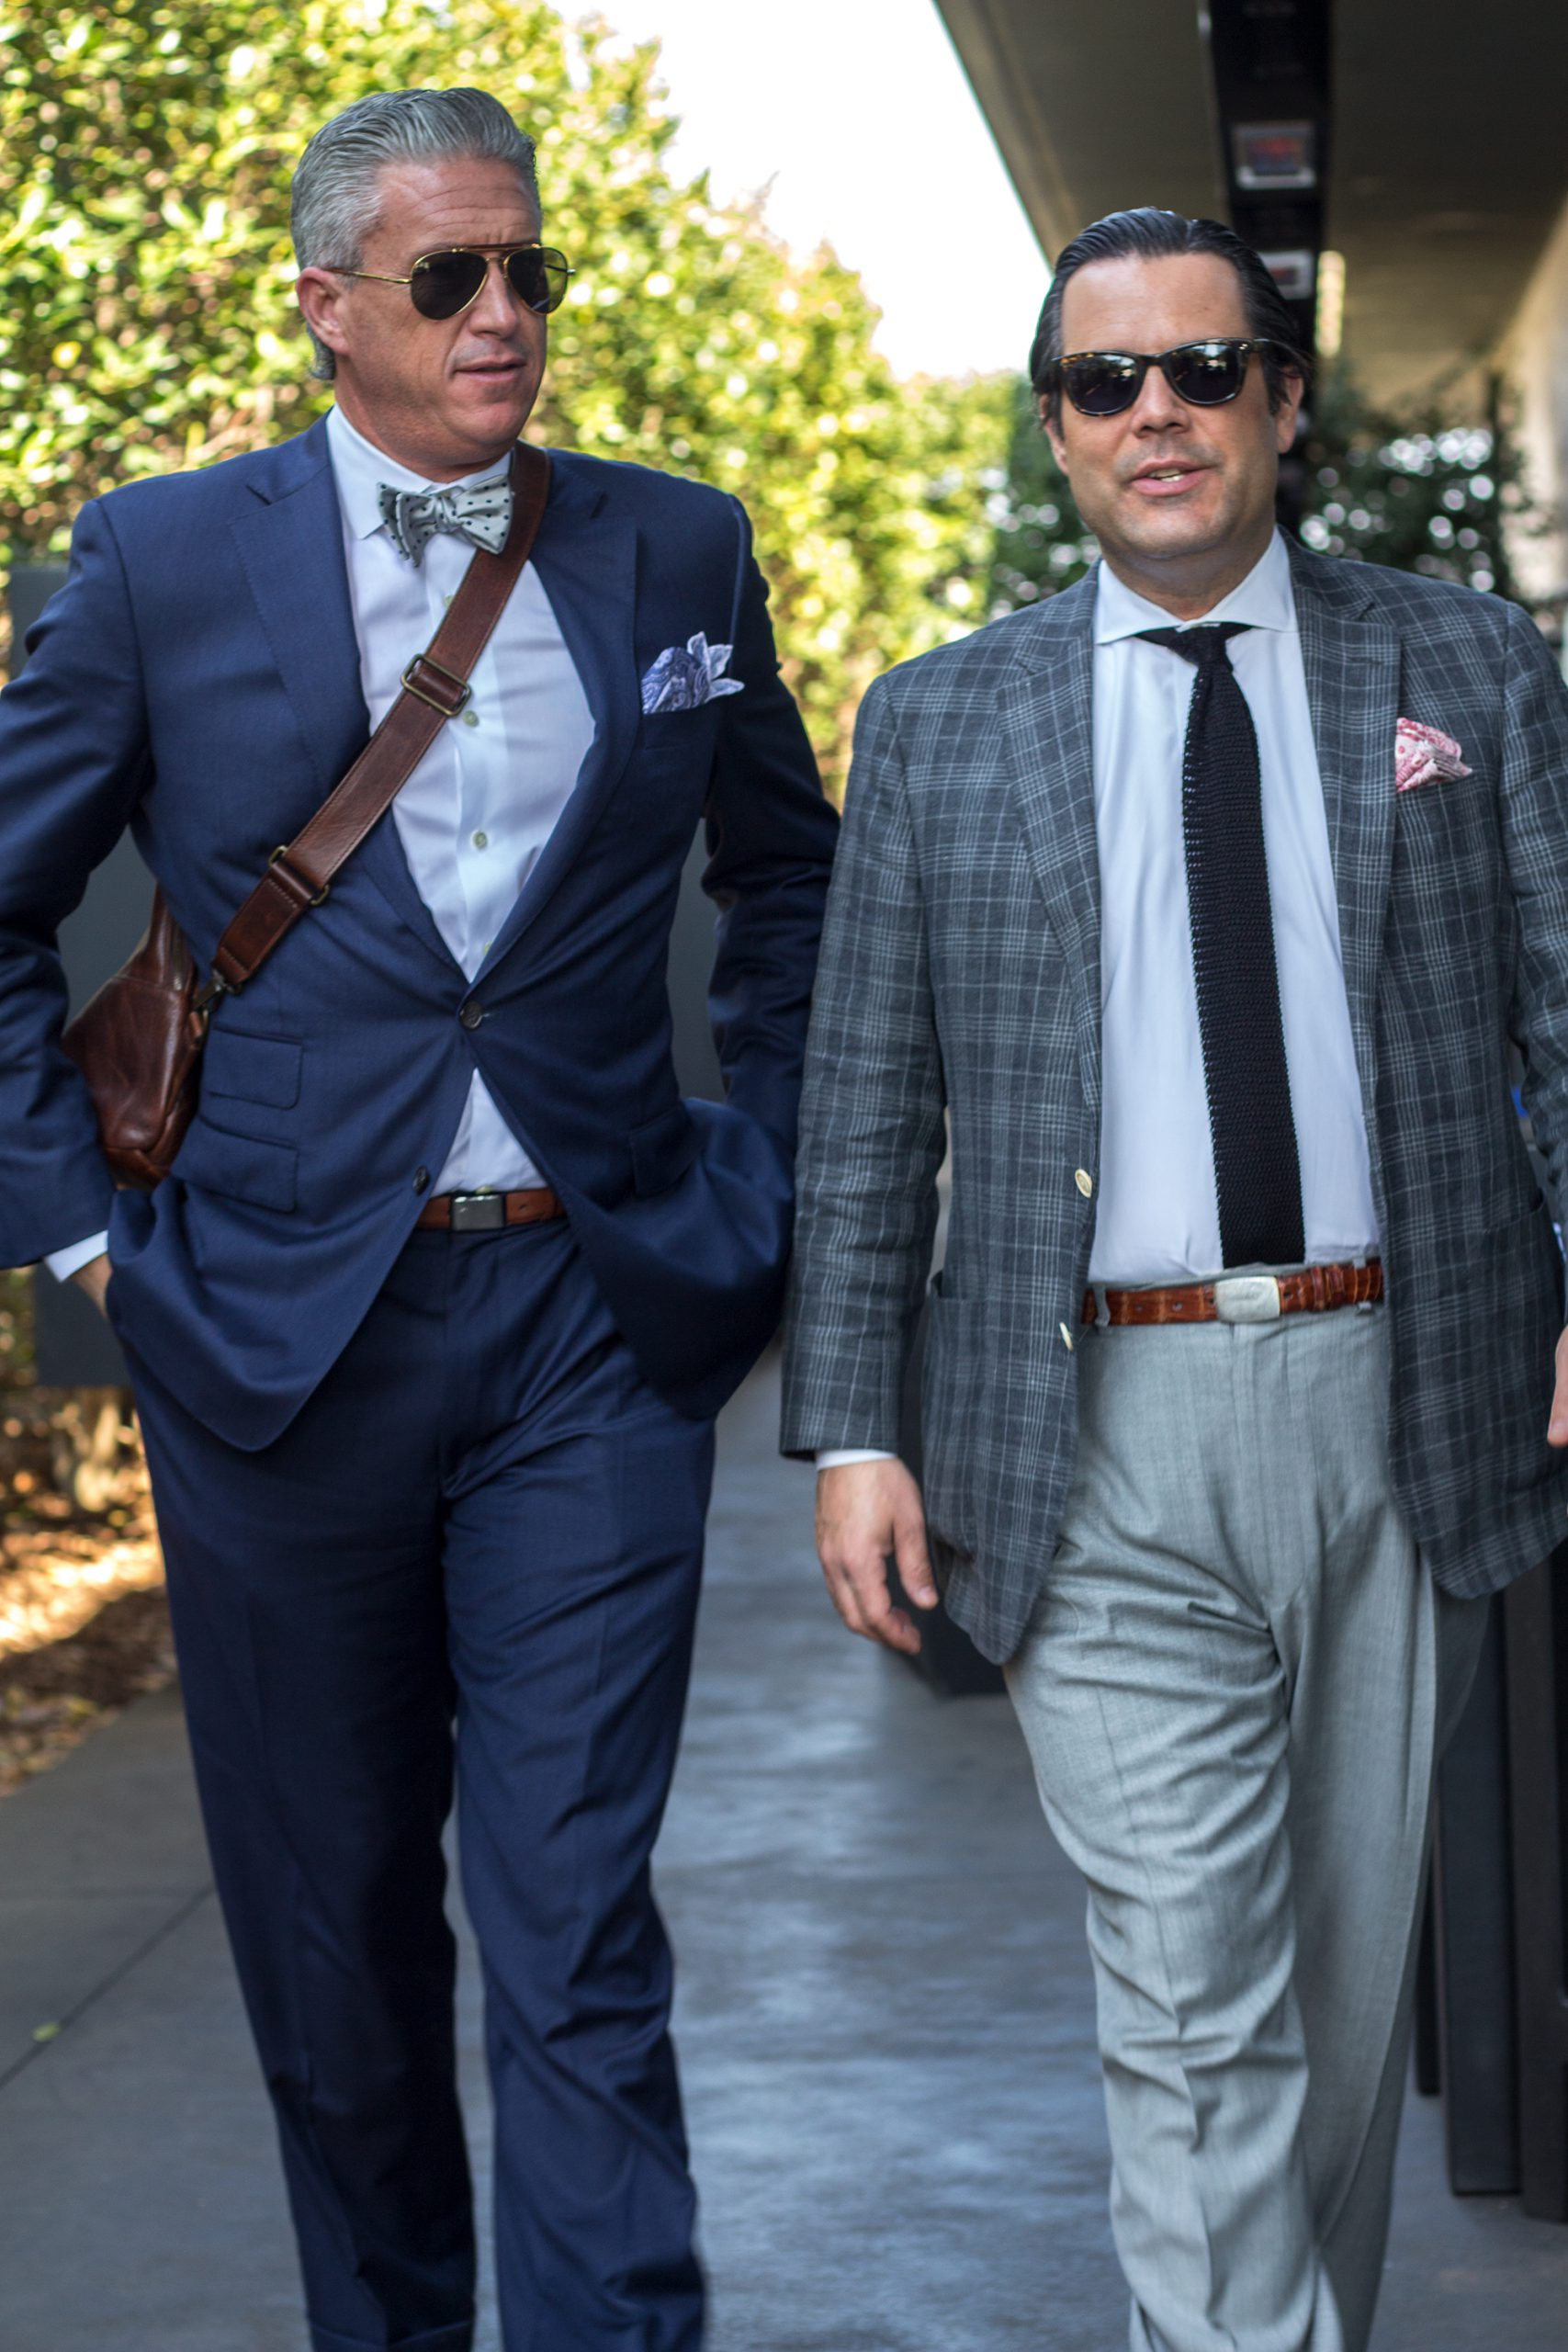 Dressing well is, in part, developing a personal style.